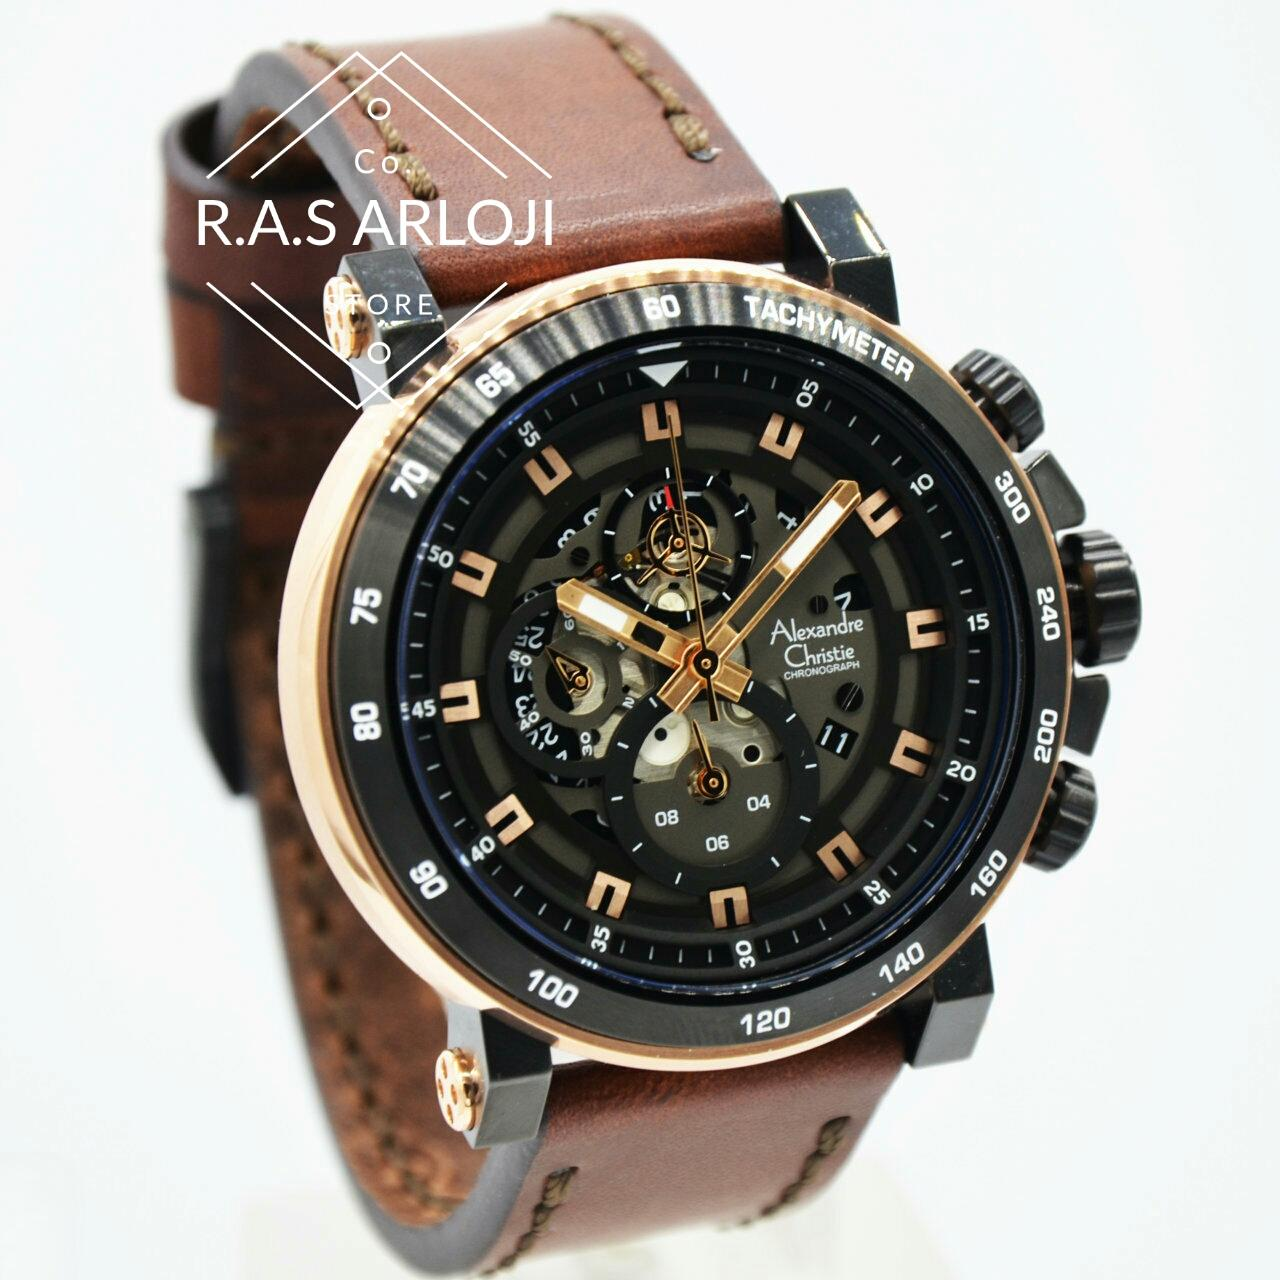 Alexandre Christie Ac6410mck Jam Tangan Pria Strap Leather Coklat Ac6439mc Chronograph Silver Steel Hot Deals Source Rosegold Ac6429 Chrono